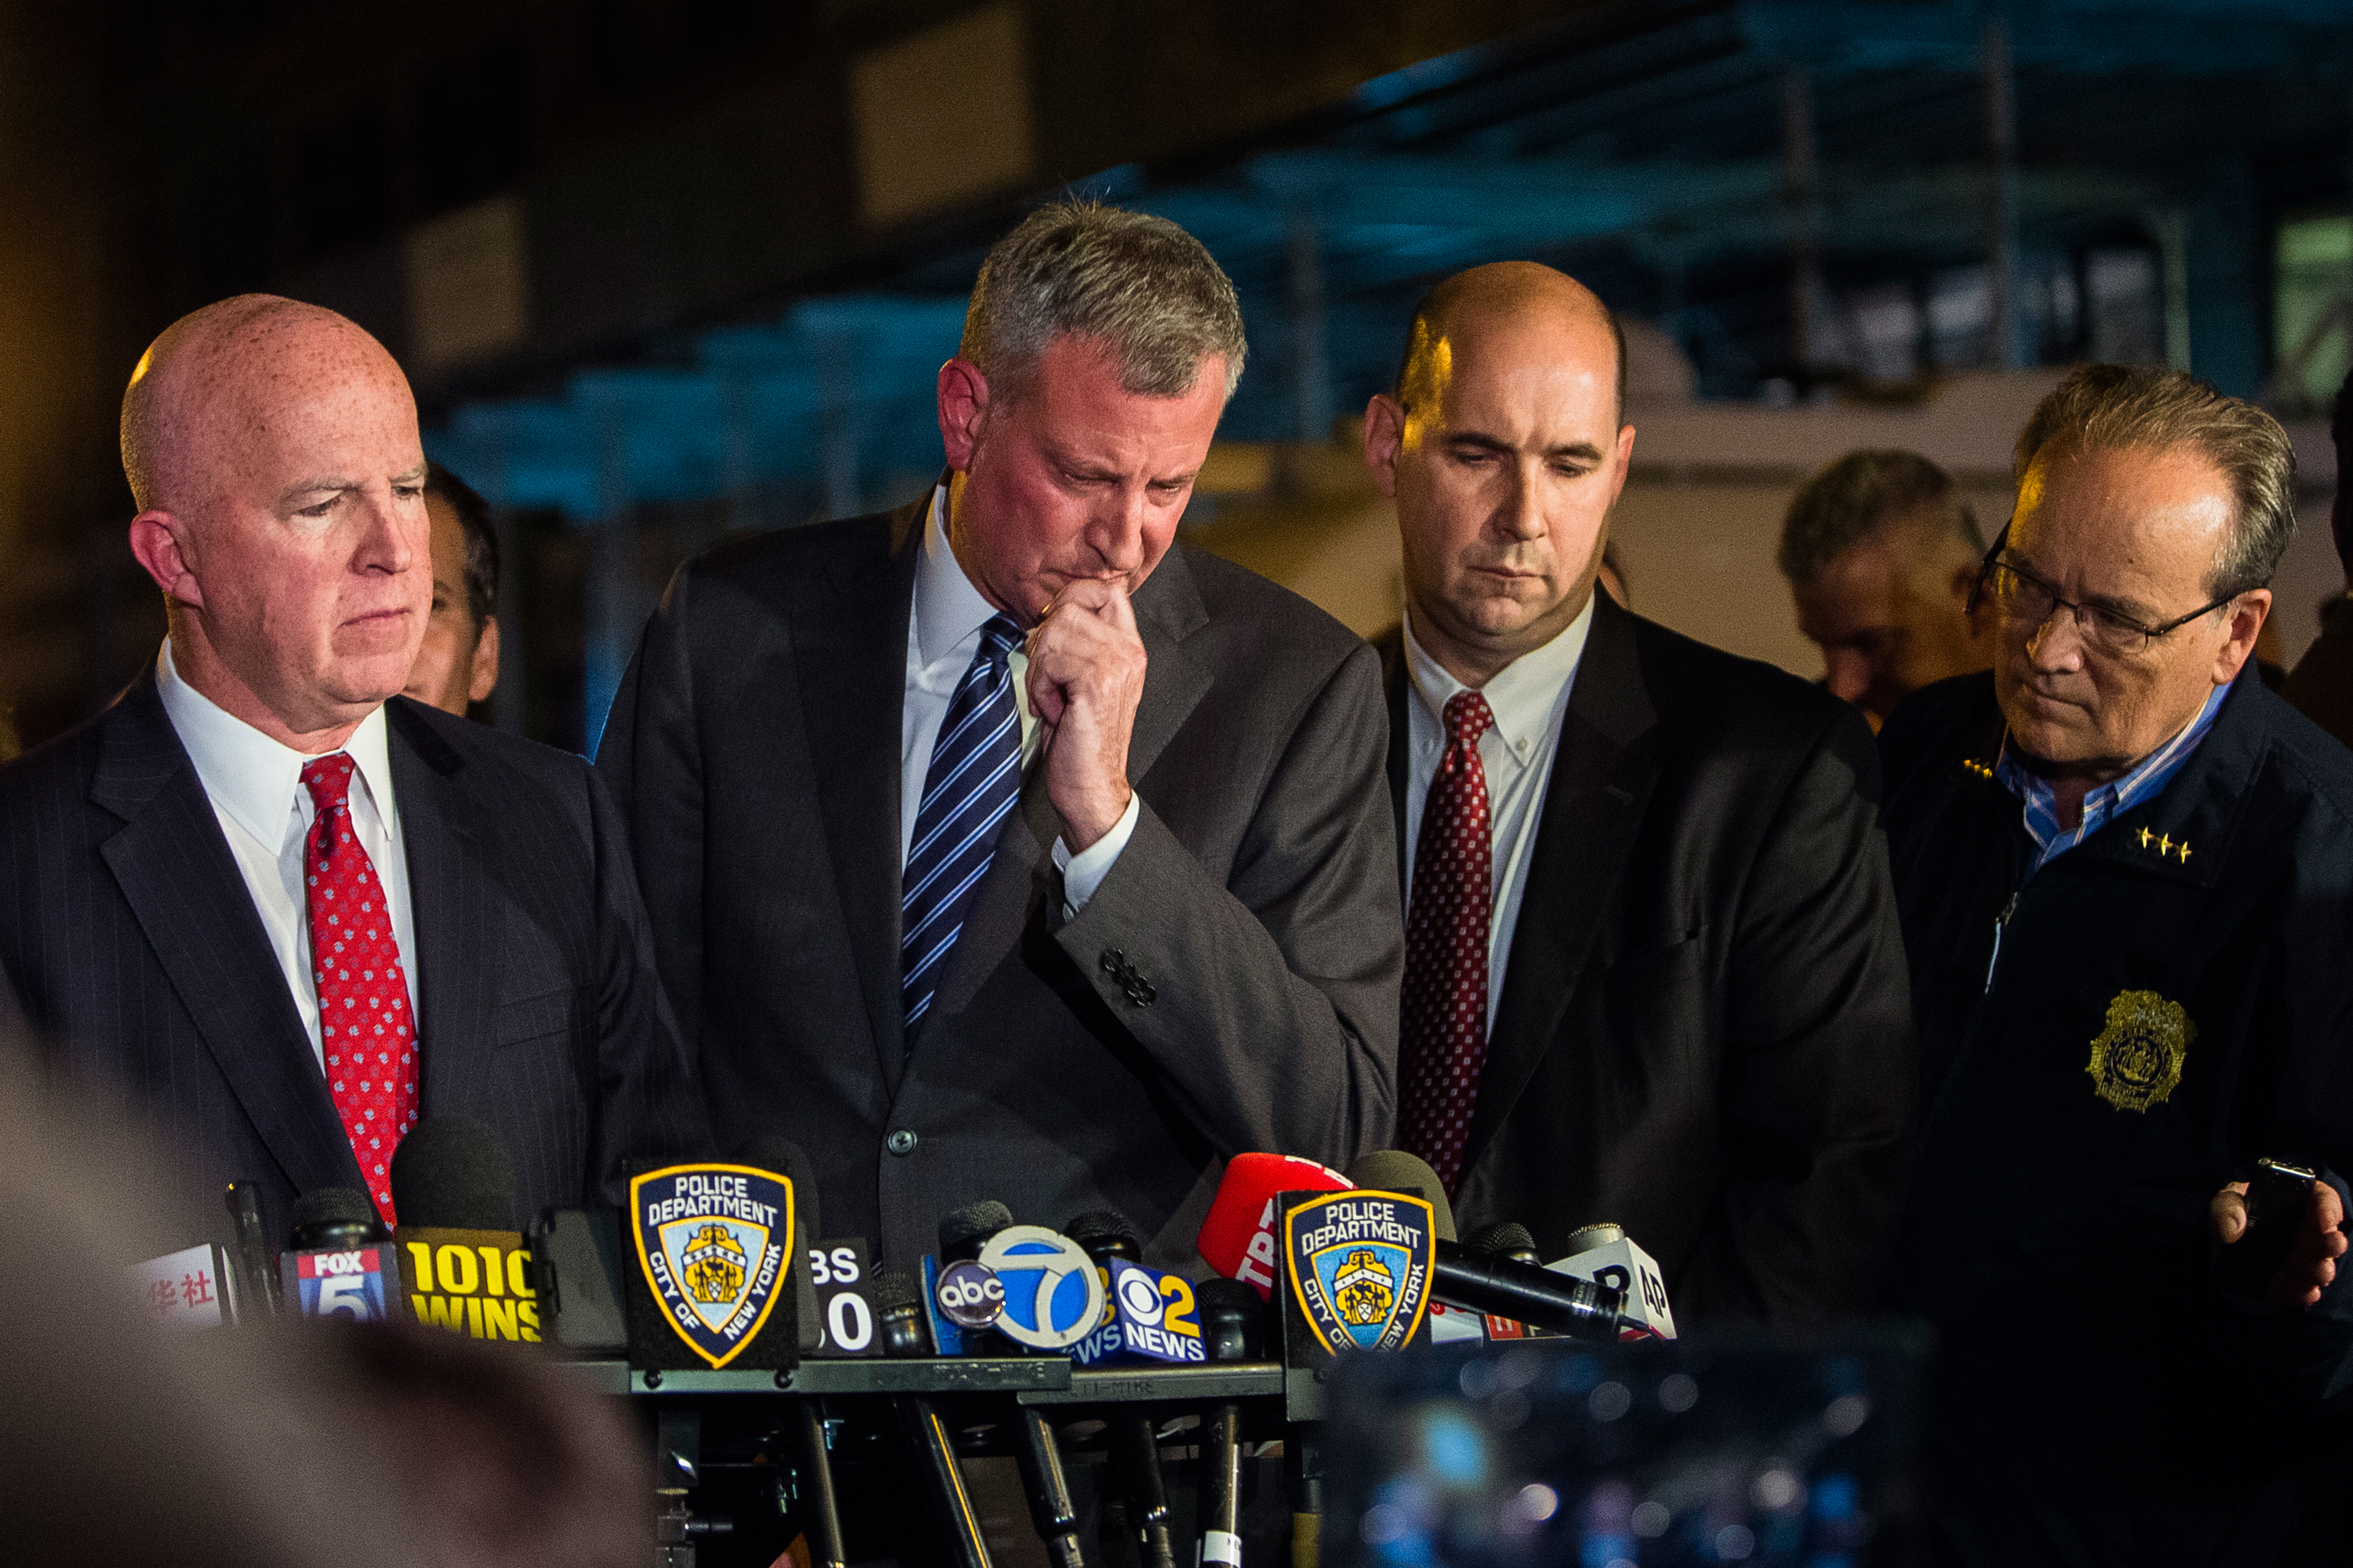 Mayor Bill de Blasio, center, and NYPD Chief of Department James O'Neill, left, react during a press conference near the scene of an explosion on West 23rd street in Manhattan's Chelsea neighborhood in New York on Sept. 17, 2016.